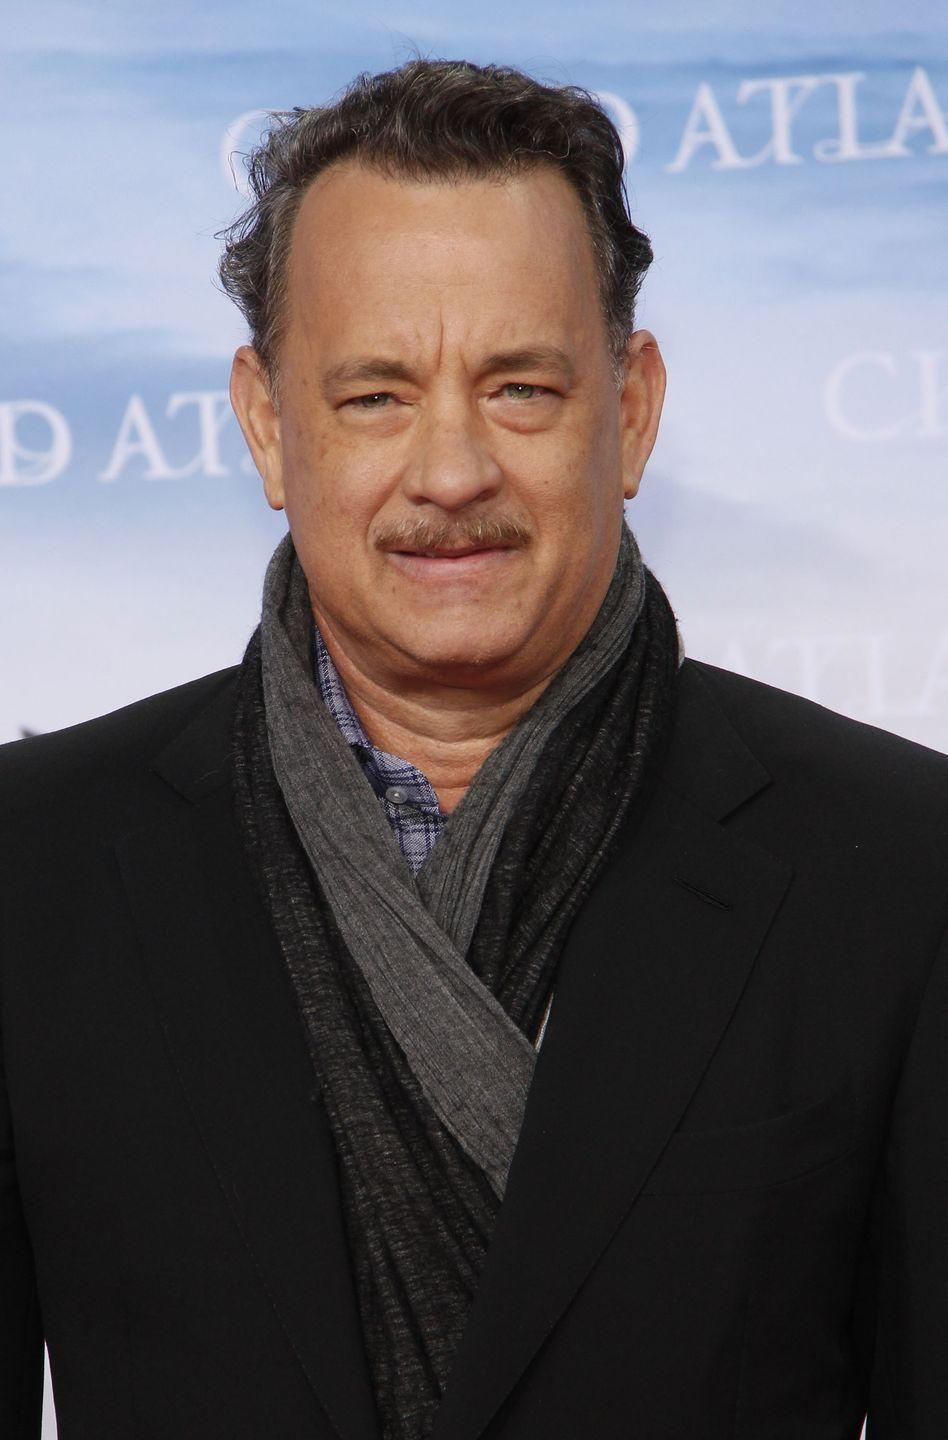 "<p>Despite saying he doesn't have a <a href=""https://www.etonline.com/movies/140681_Tom_Hanks_Says_Rita_Wilson_Hated_Saving_Mr_Banks_Mustache"" rel=""nofollow noopener"" target=""_blank"" data-ylk=""slk:&quot;mustache face,&quot;"" class=""link rapid-noclick-resp"">""mustache face,""</a> Tom Hanks sported one for the majority of 2012 for his role as Walt Disney in <em>Saving Mr. Banks</em>. </p>"